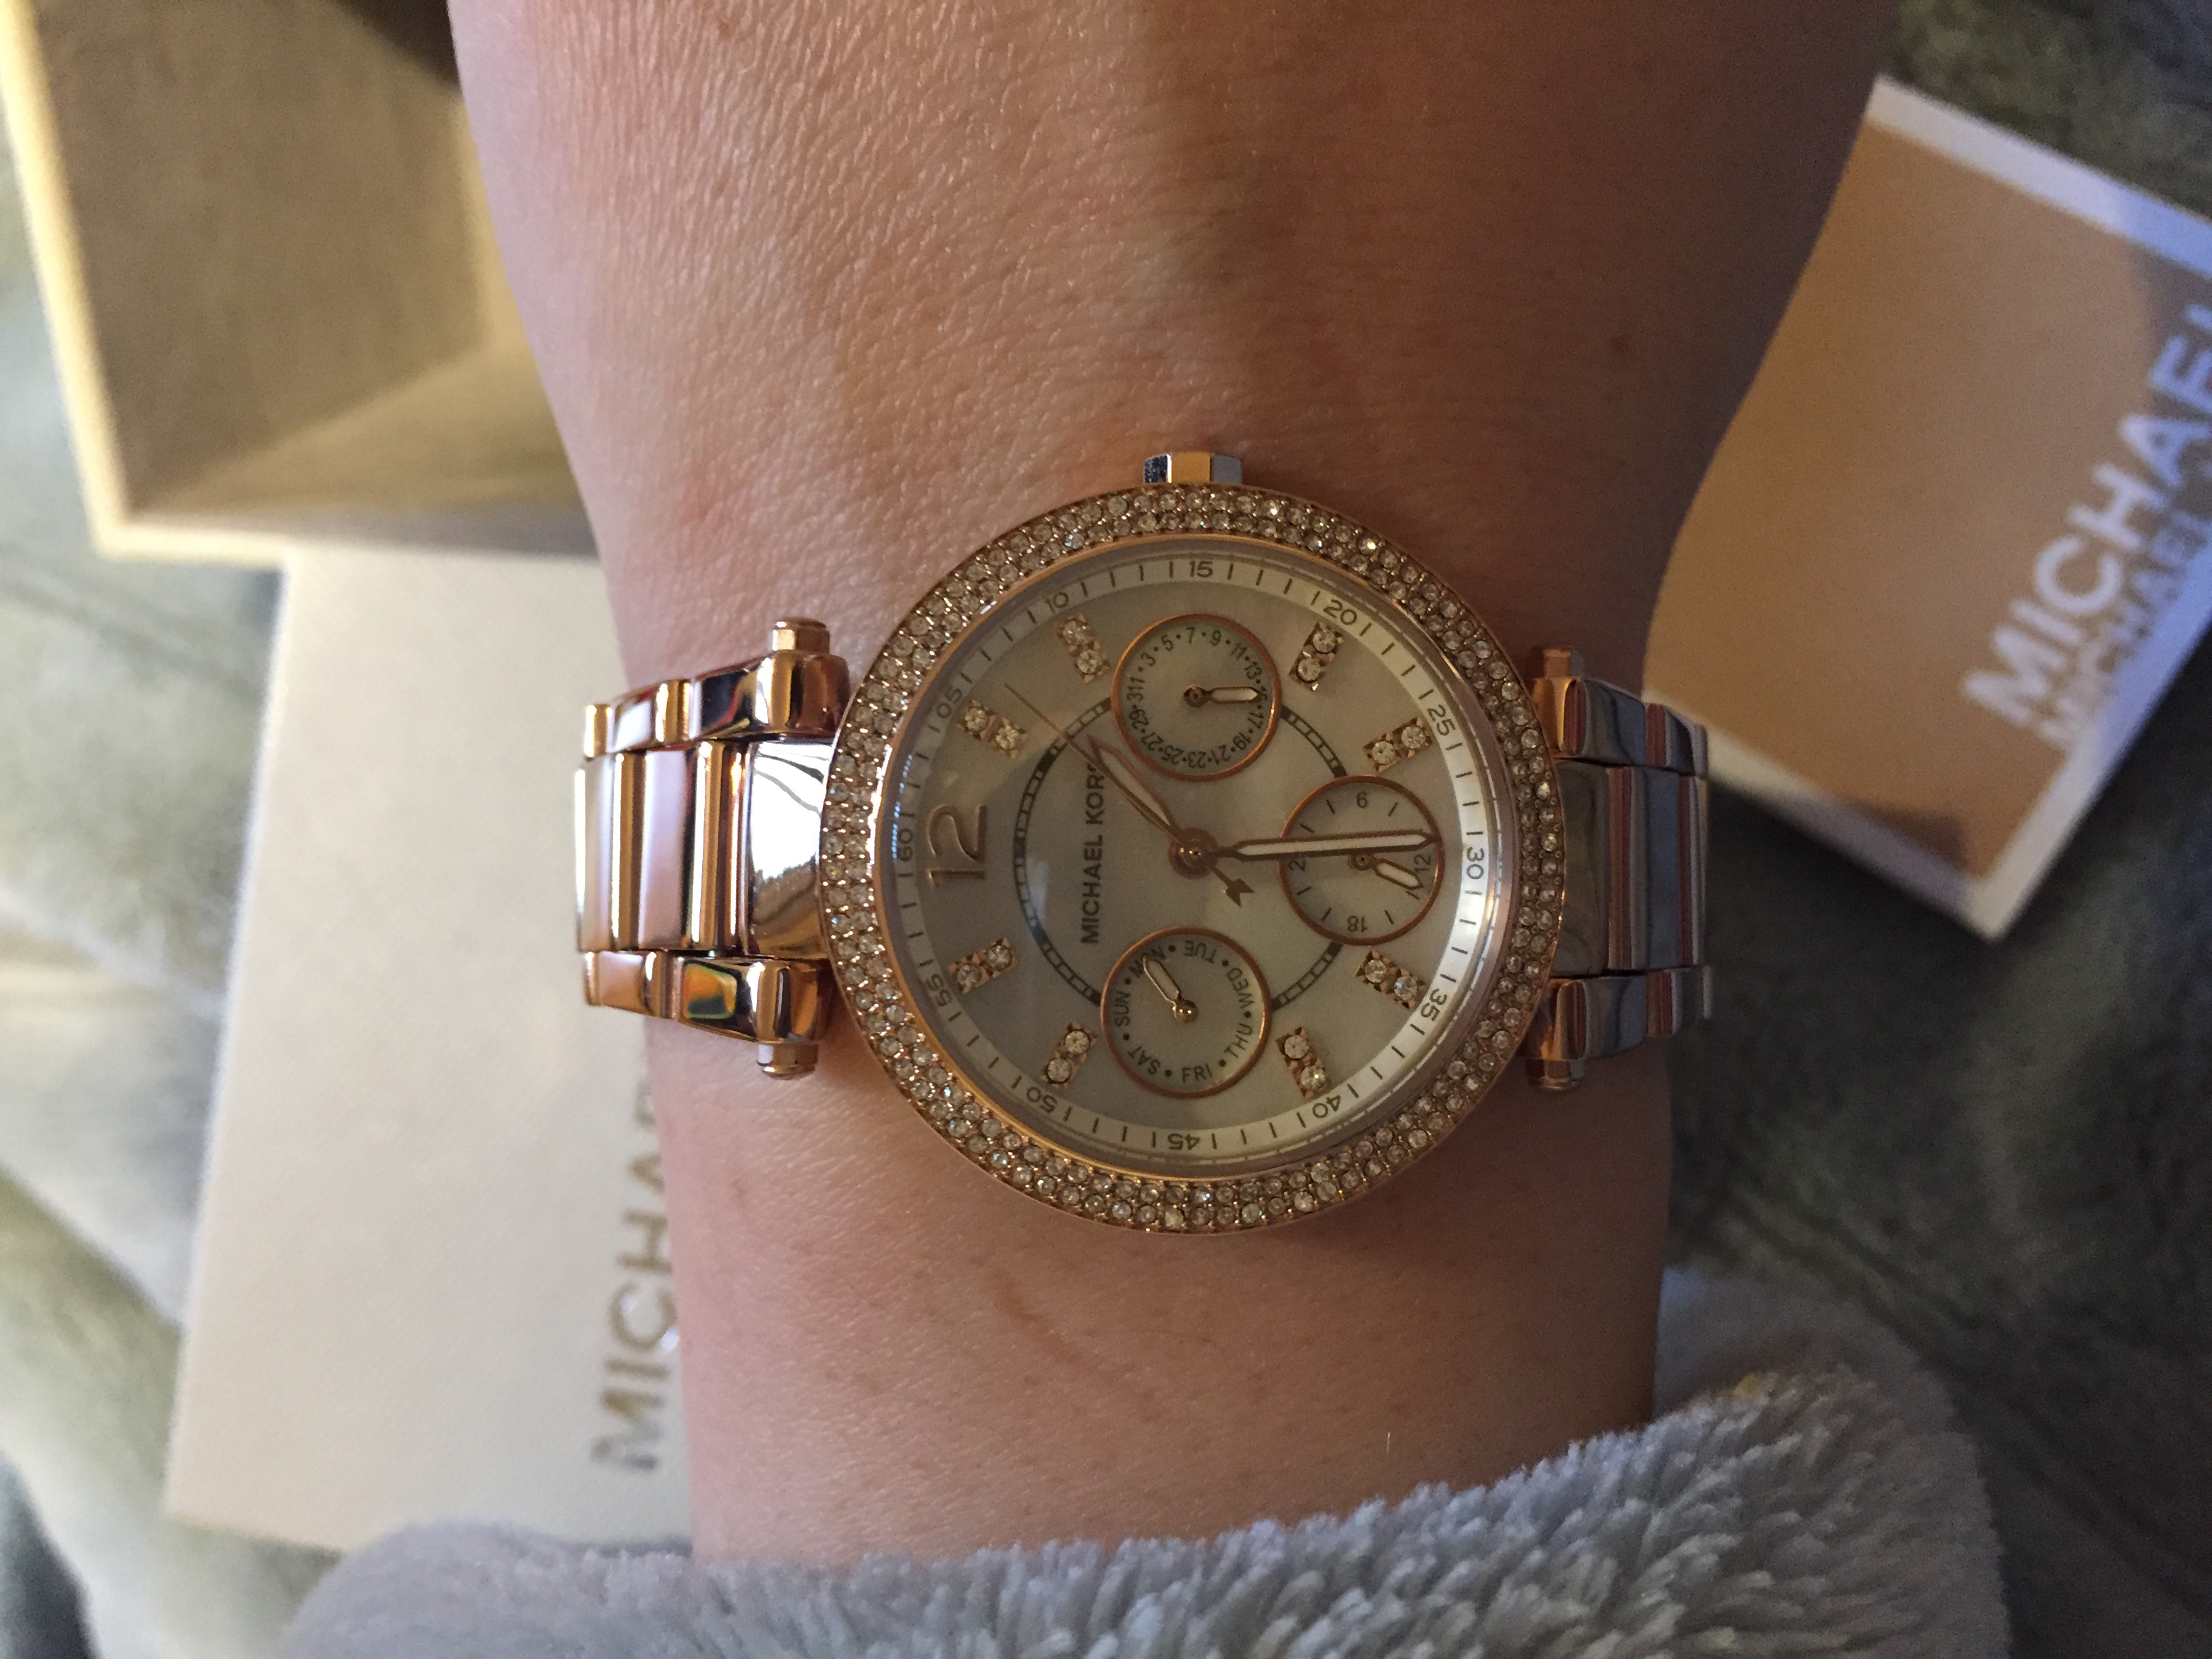 be5d2385167b I am very happy with my gorgeous new Michael Kors watch and the service I  received from the watch shop.